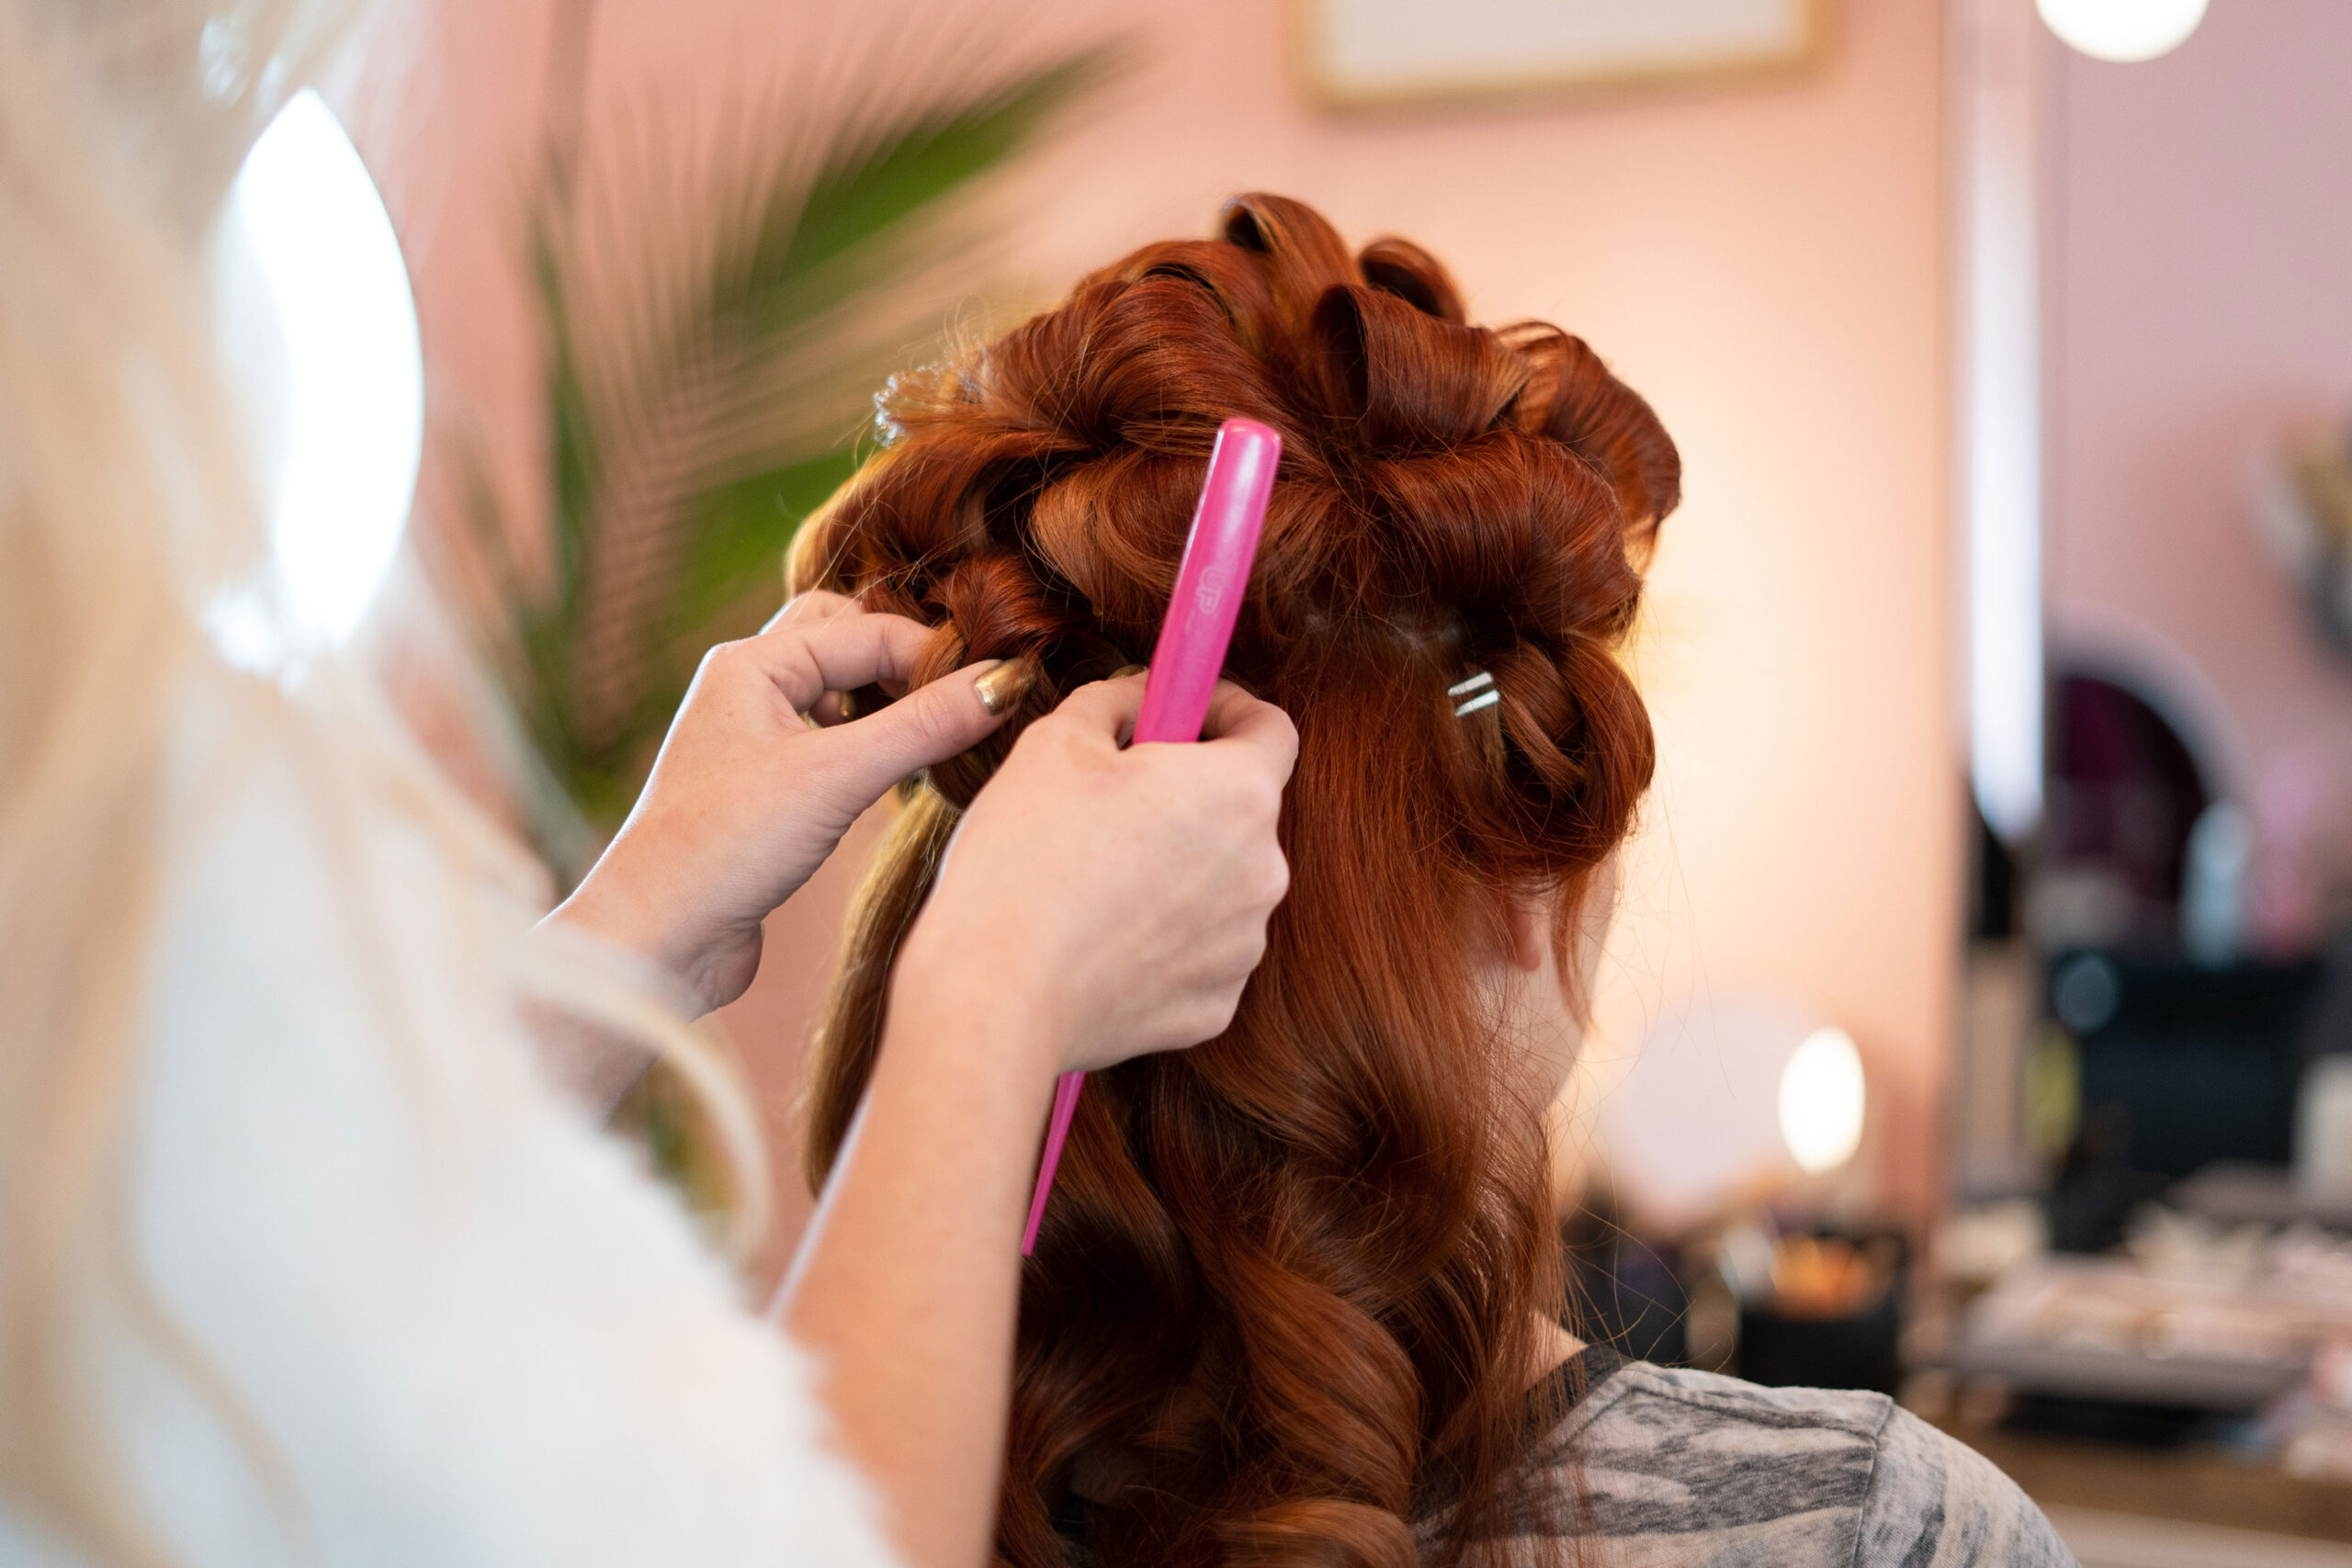 Hairdressers Hong Kong: 6 Affordable Salons